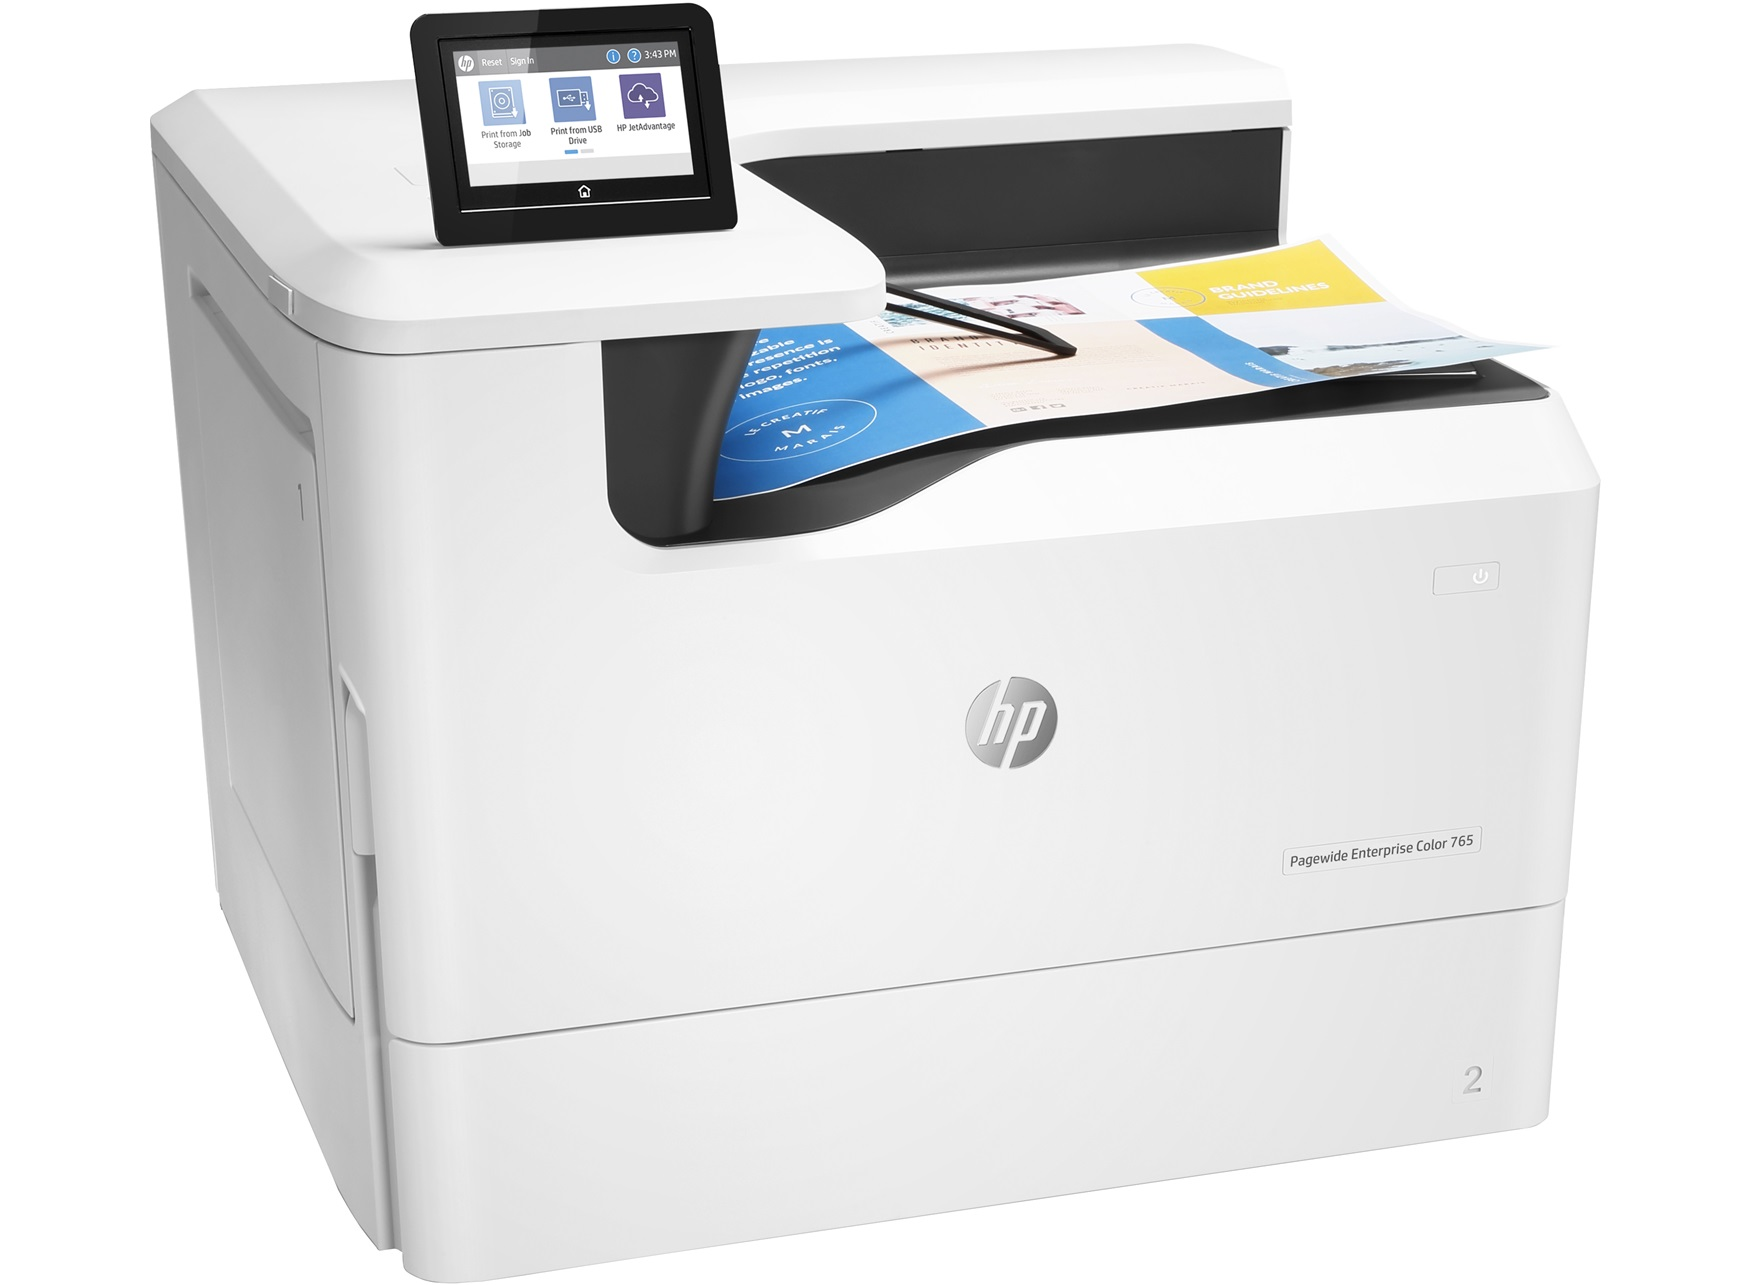 HP PageWide Enterprise Color 765dn Color Laser Printer, Demo (J7Z04A)